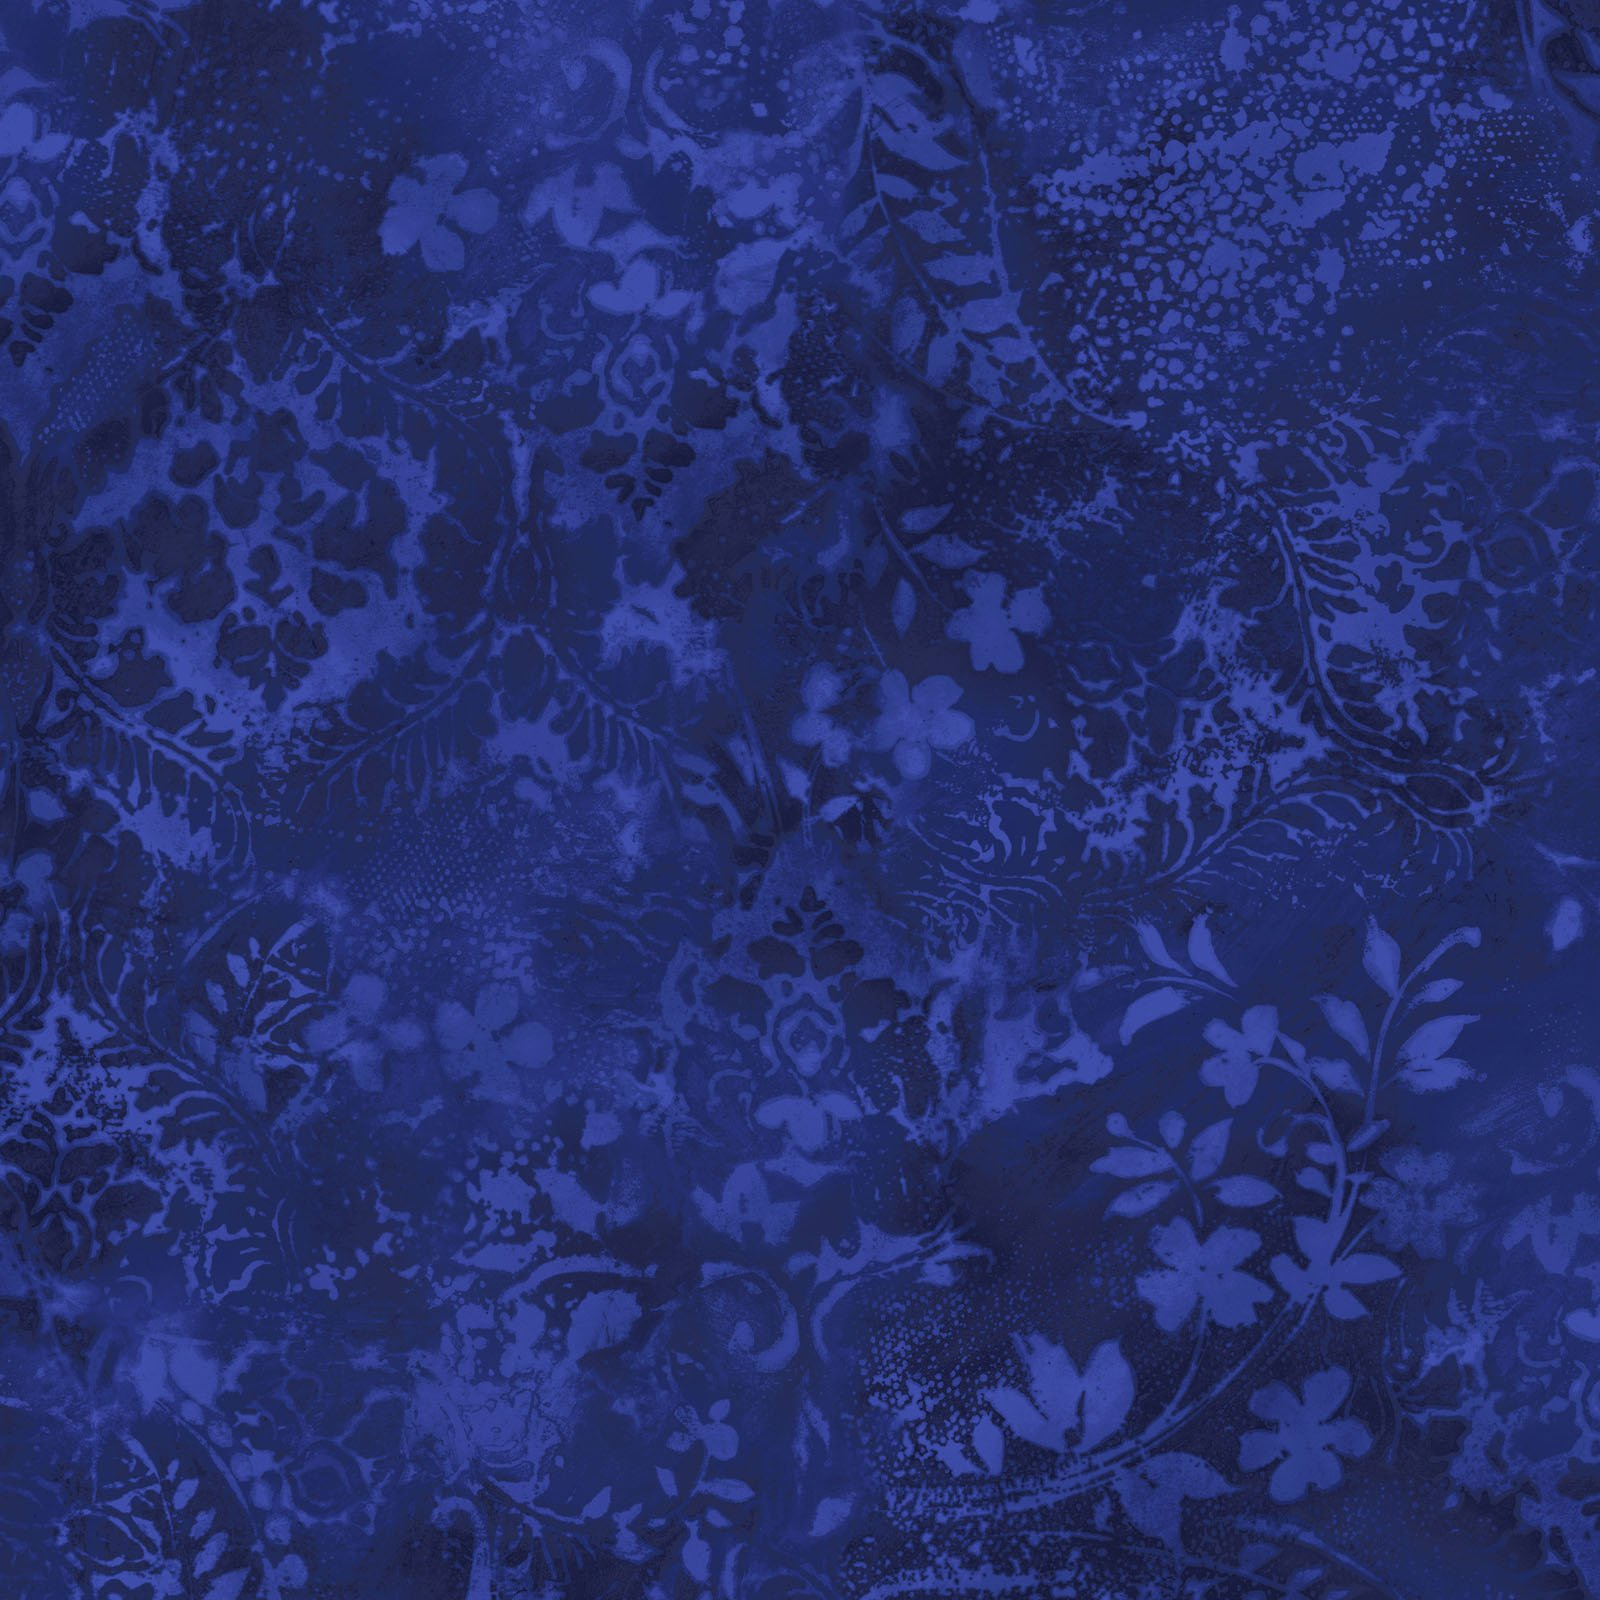 EESC-QBD105 N - BEAUTIFUL BACKING 108 VINTAGE DAMASK BY MAYWOOD COBALT - ARRIVING IN MAY 2021